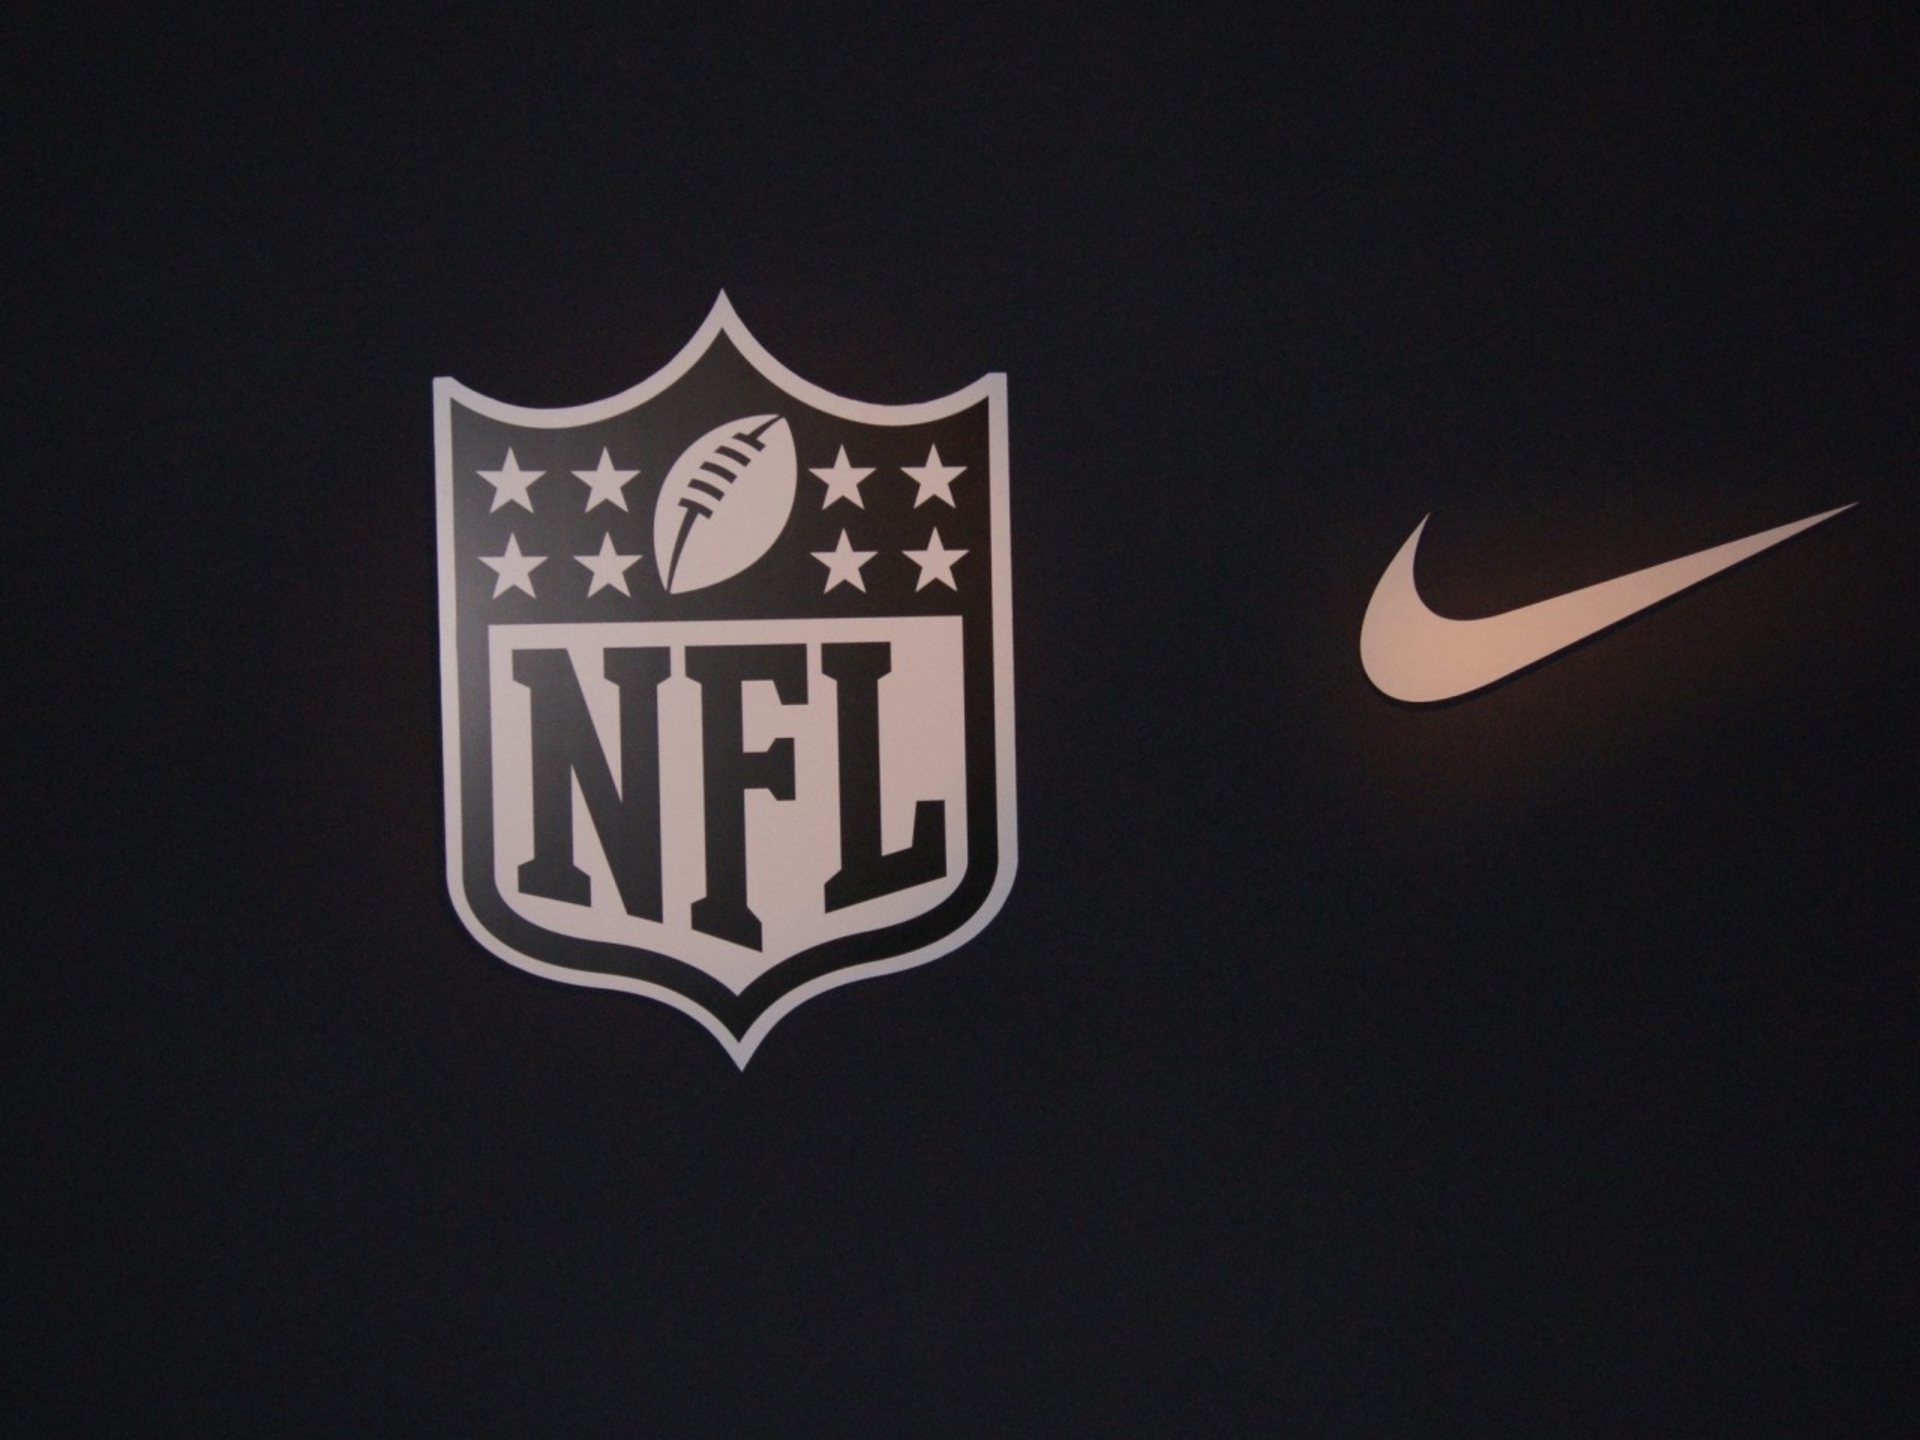 Nike Nfl Football Wallpaper Images & Pictures - Becuo